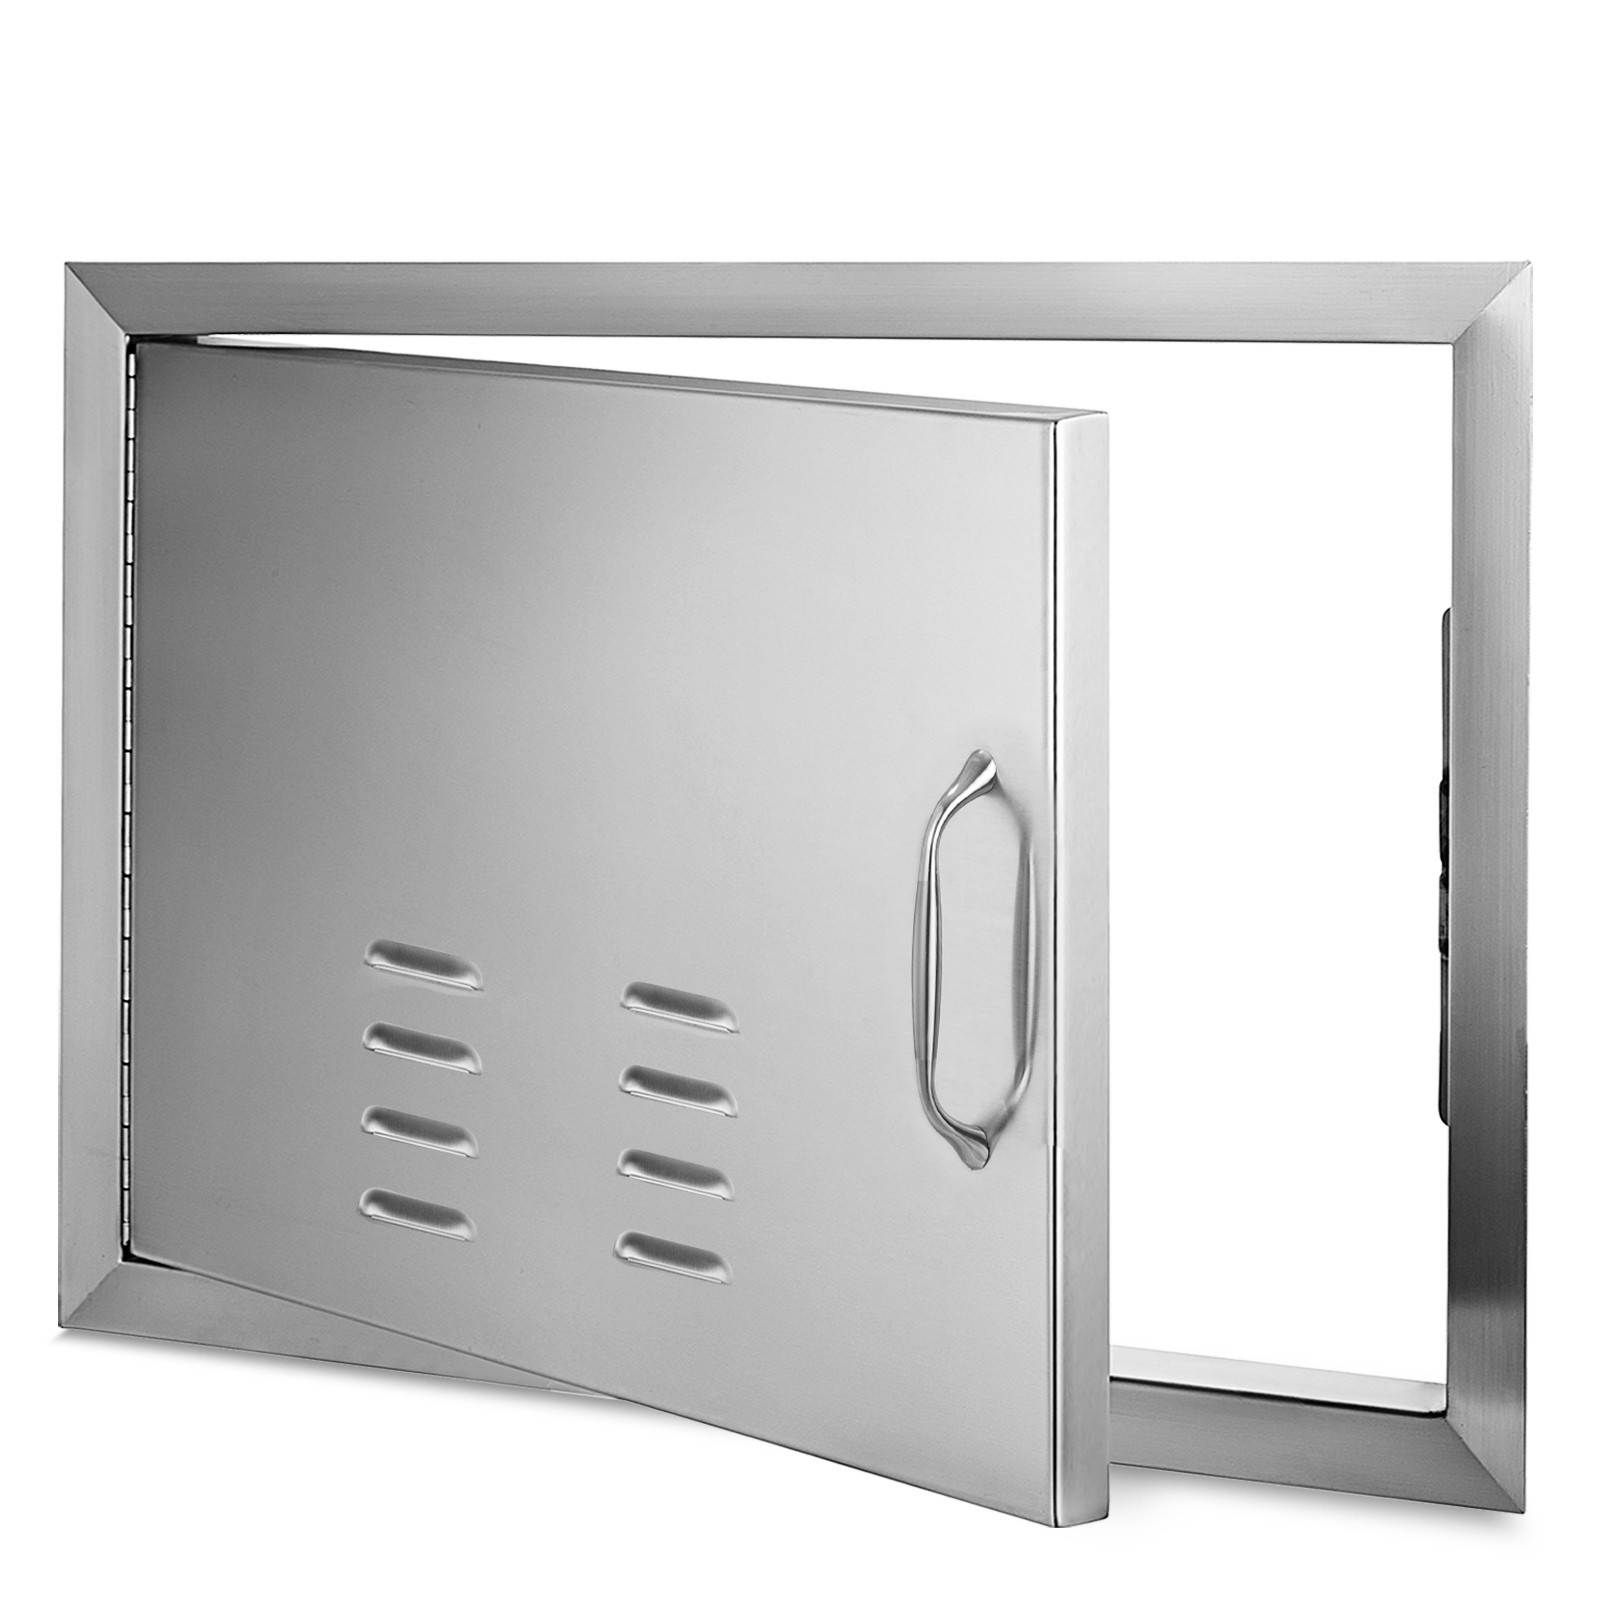 18 Style Access Doors And Drawers Outdoor Kitchen Bbq